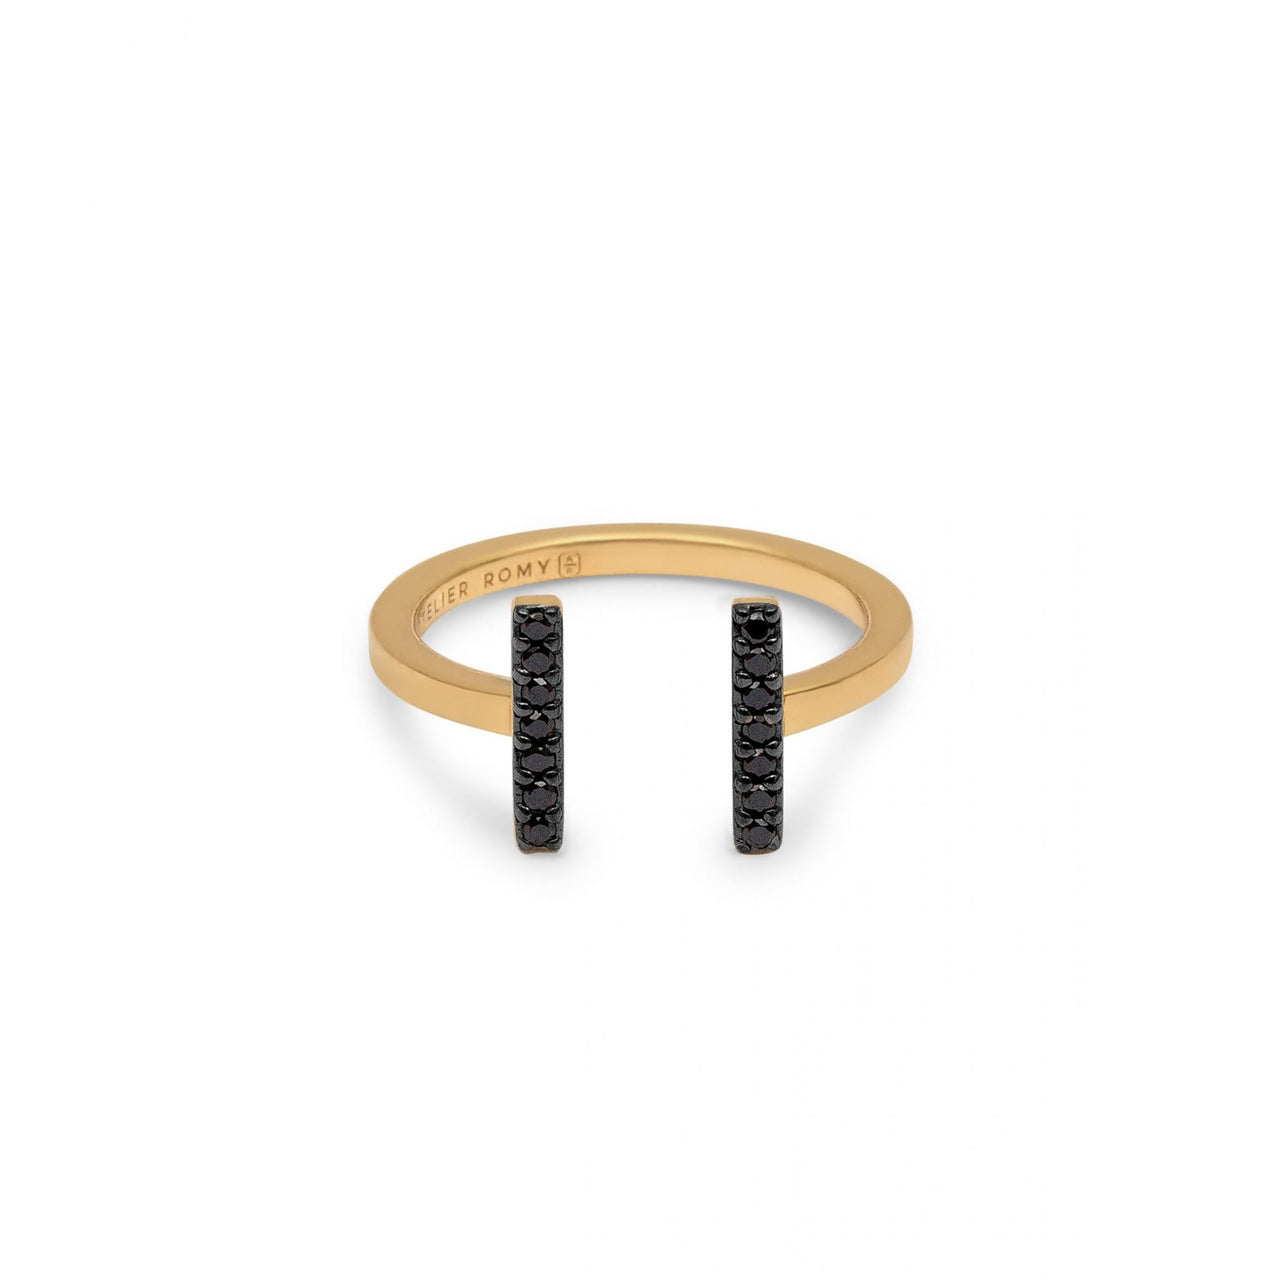 Eternity Line Ring Yellow Gold with Black Pave